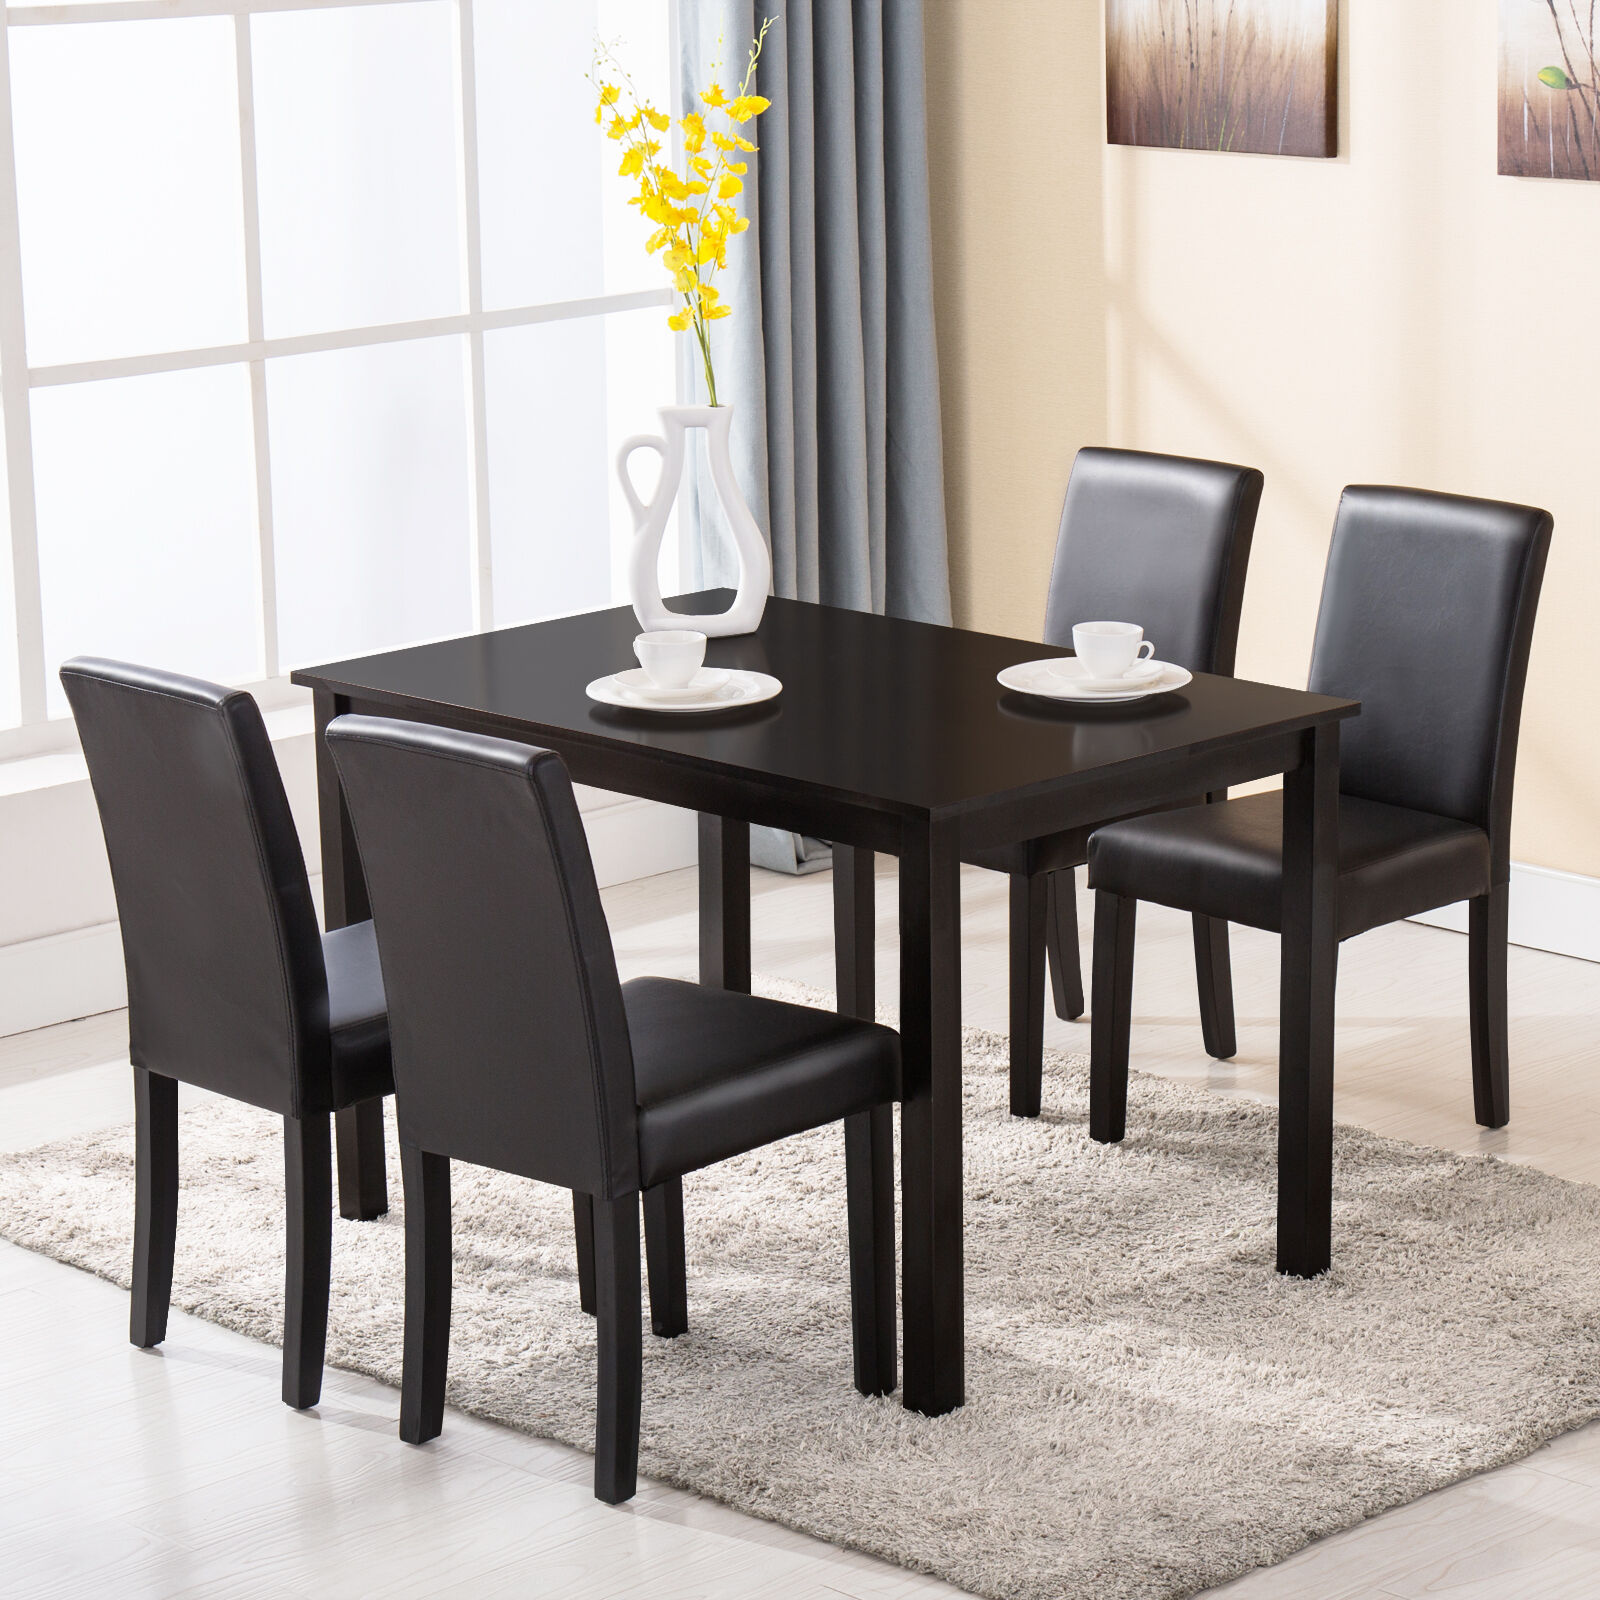 5 Piece Dining Table Set 8 Chairs Wood Kitchen Dinette Room